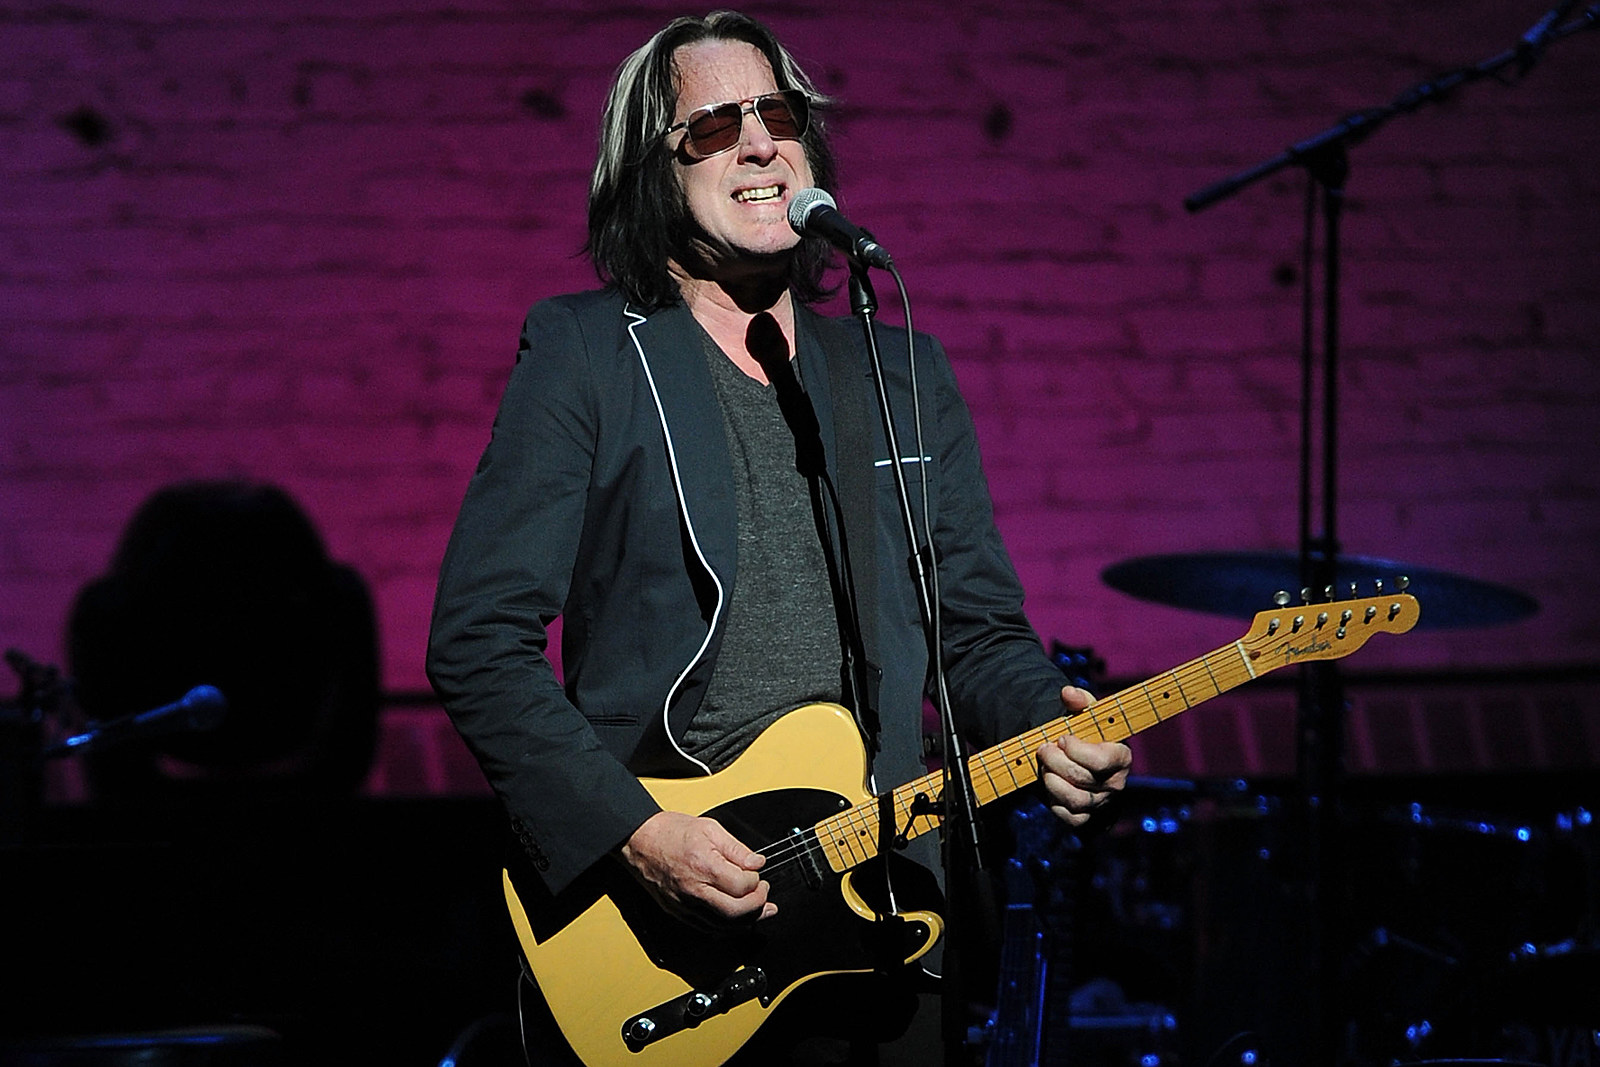 Todd Rundgren's 'Space Force' Album Moved to 2022